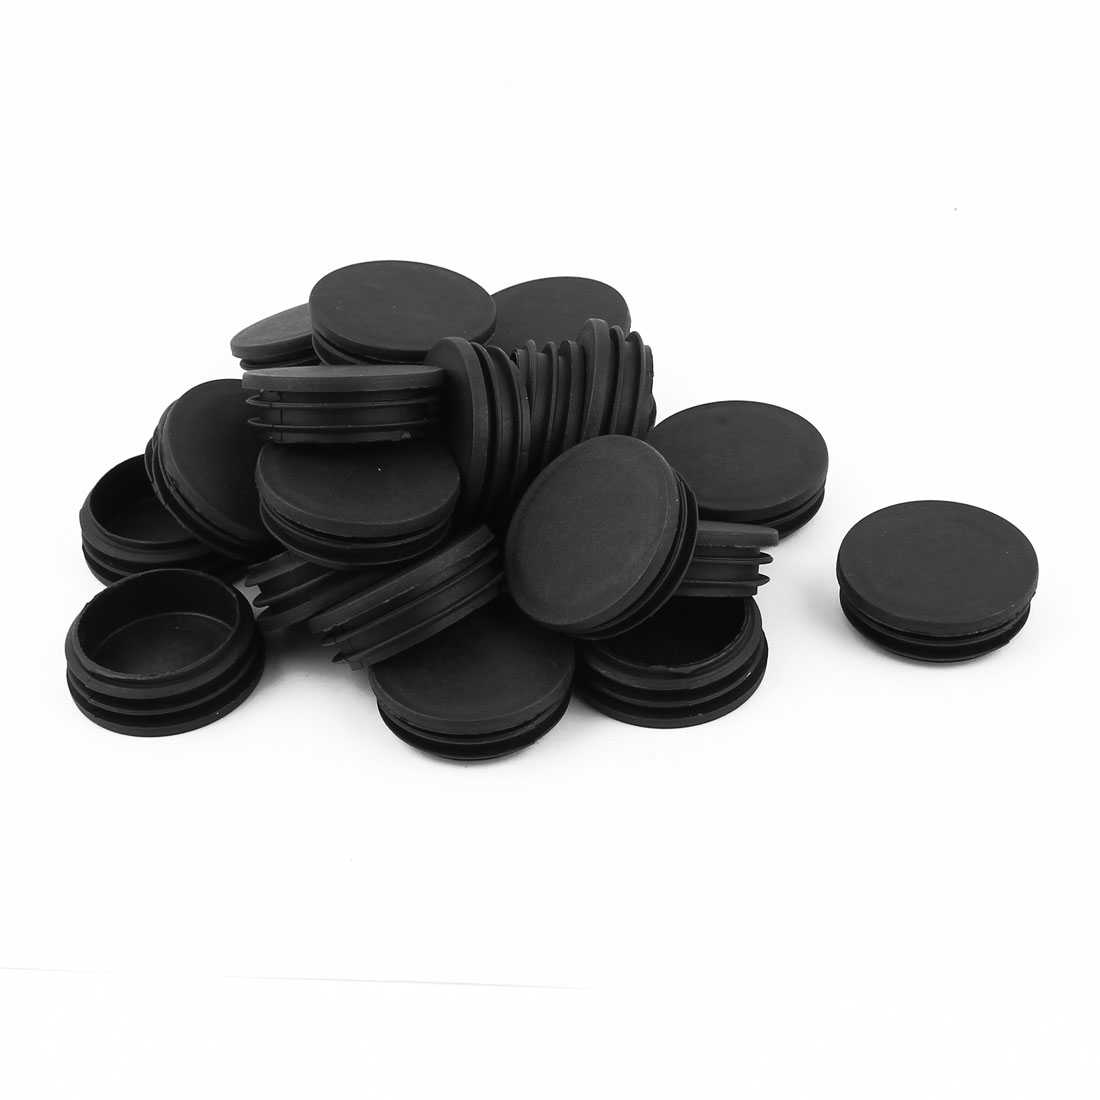 "24 Pcs Black Plastic 1 7/8"" Dia Round Tubing Tube Inserts Caps Covers"